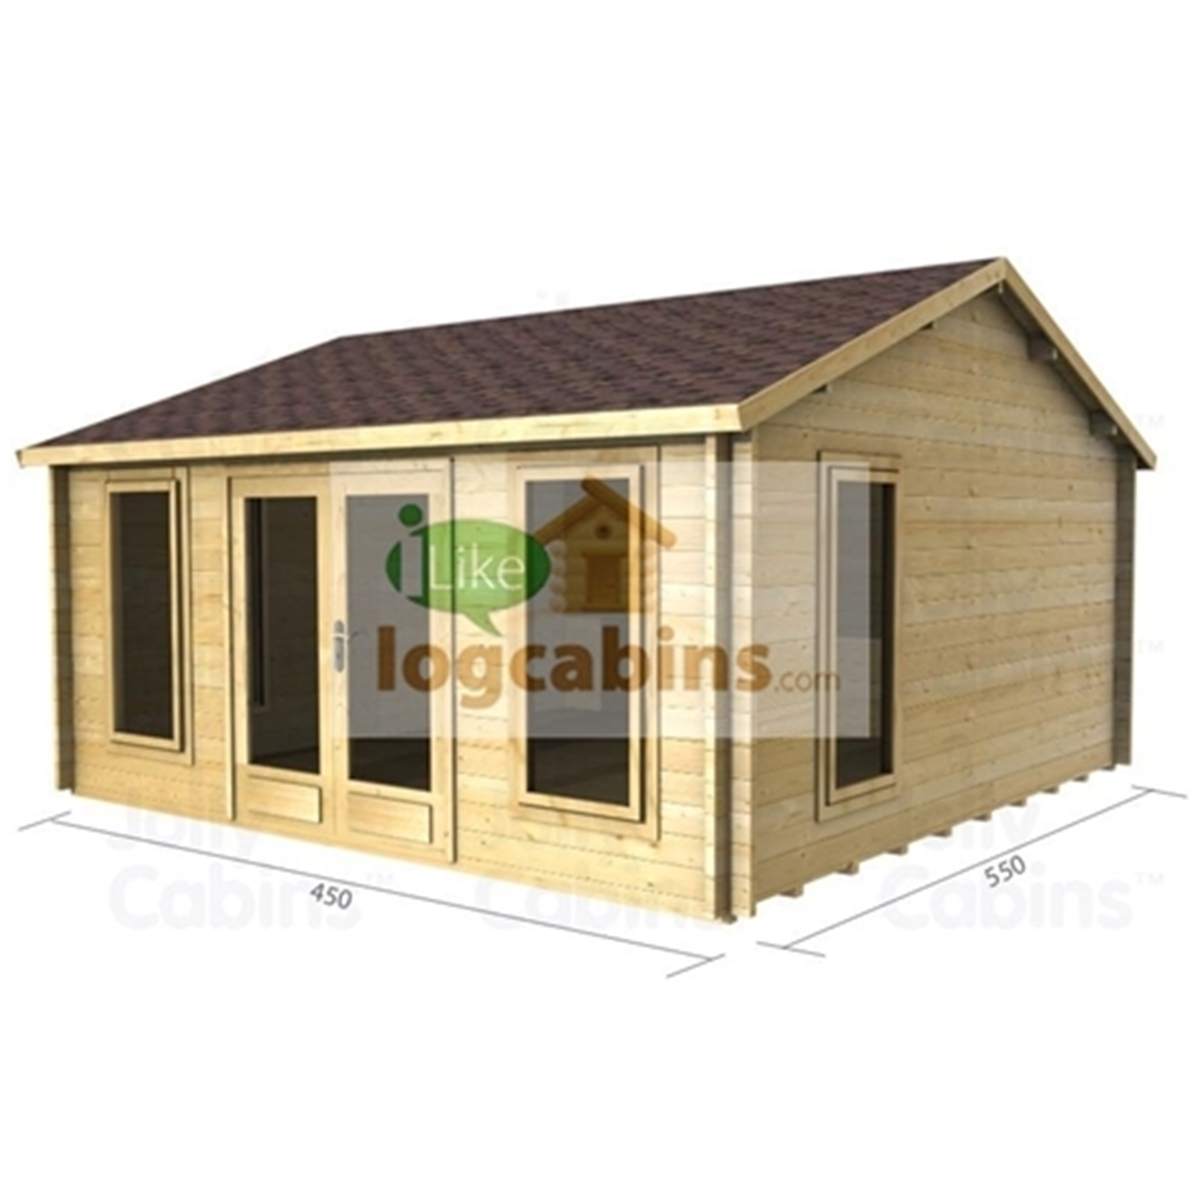 Superb img of Discovery Premier Cabins : 4.5m x 5.5m Reverse Apex Log Cabin Double  with #9C792F color and 1200x1200 pixels